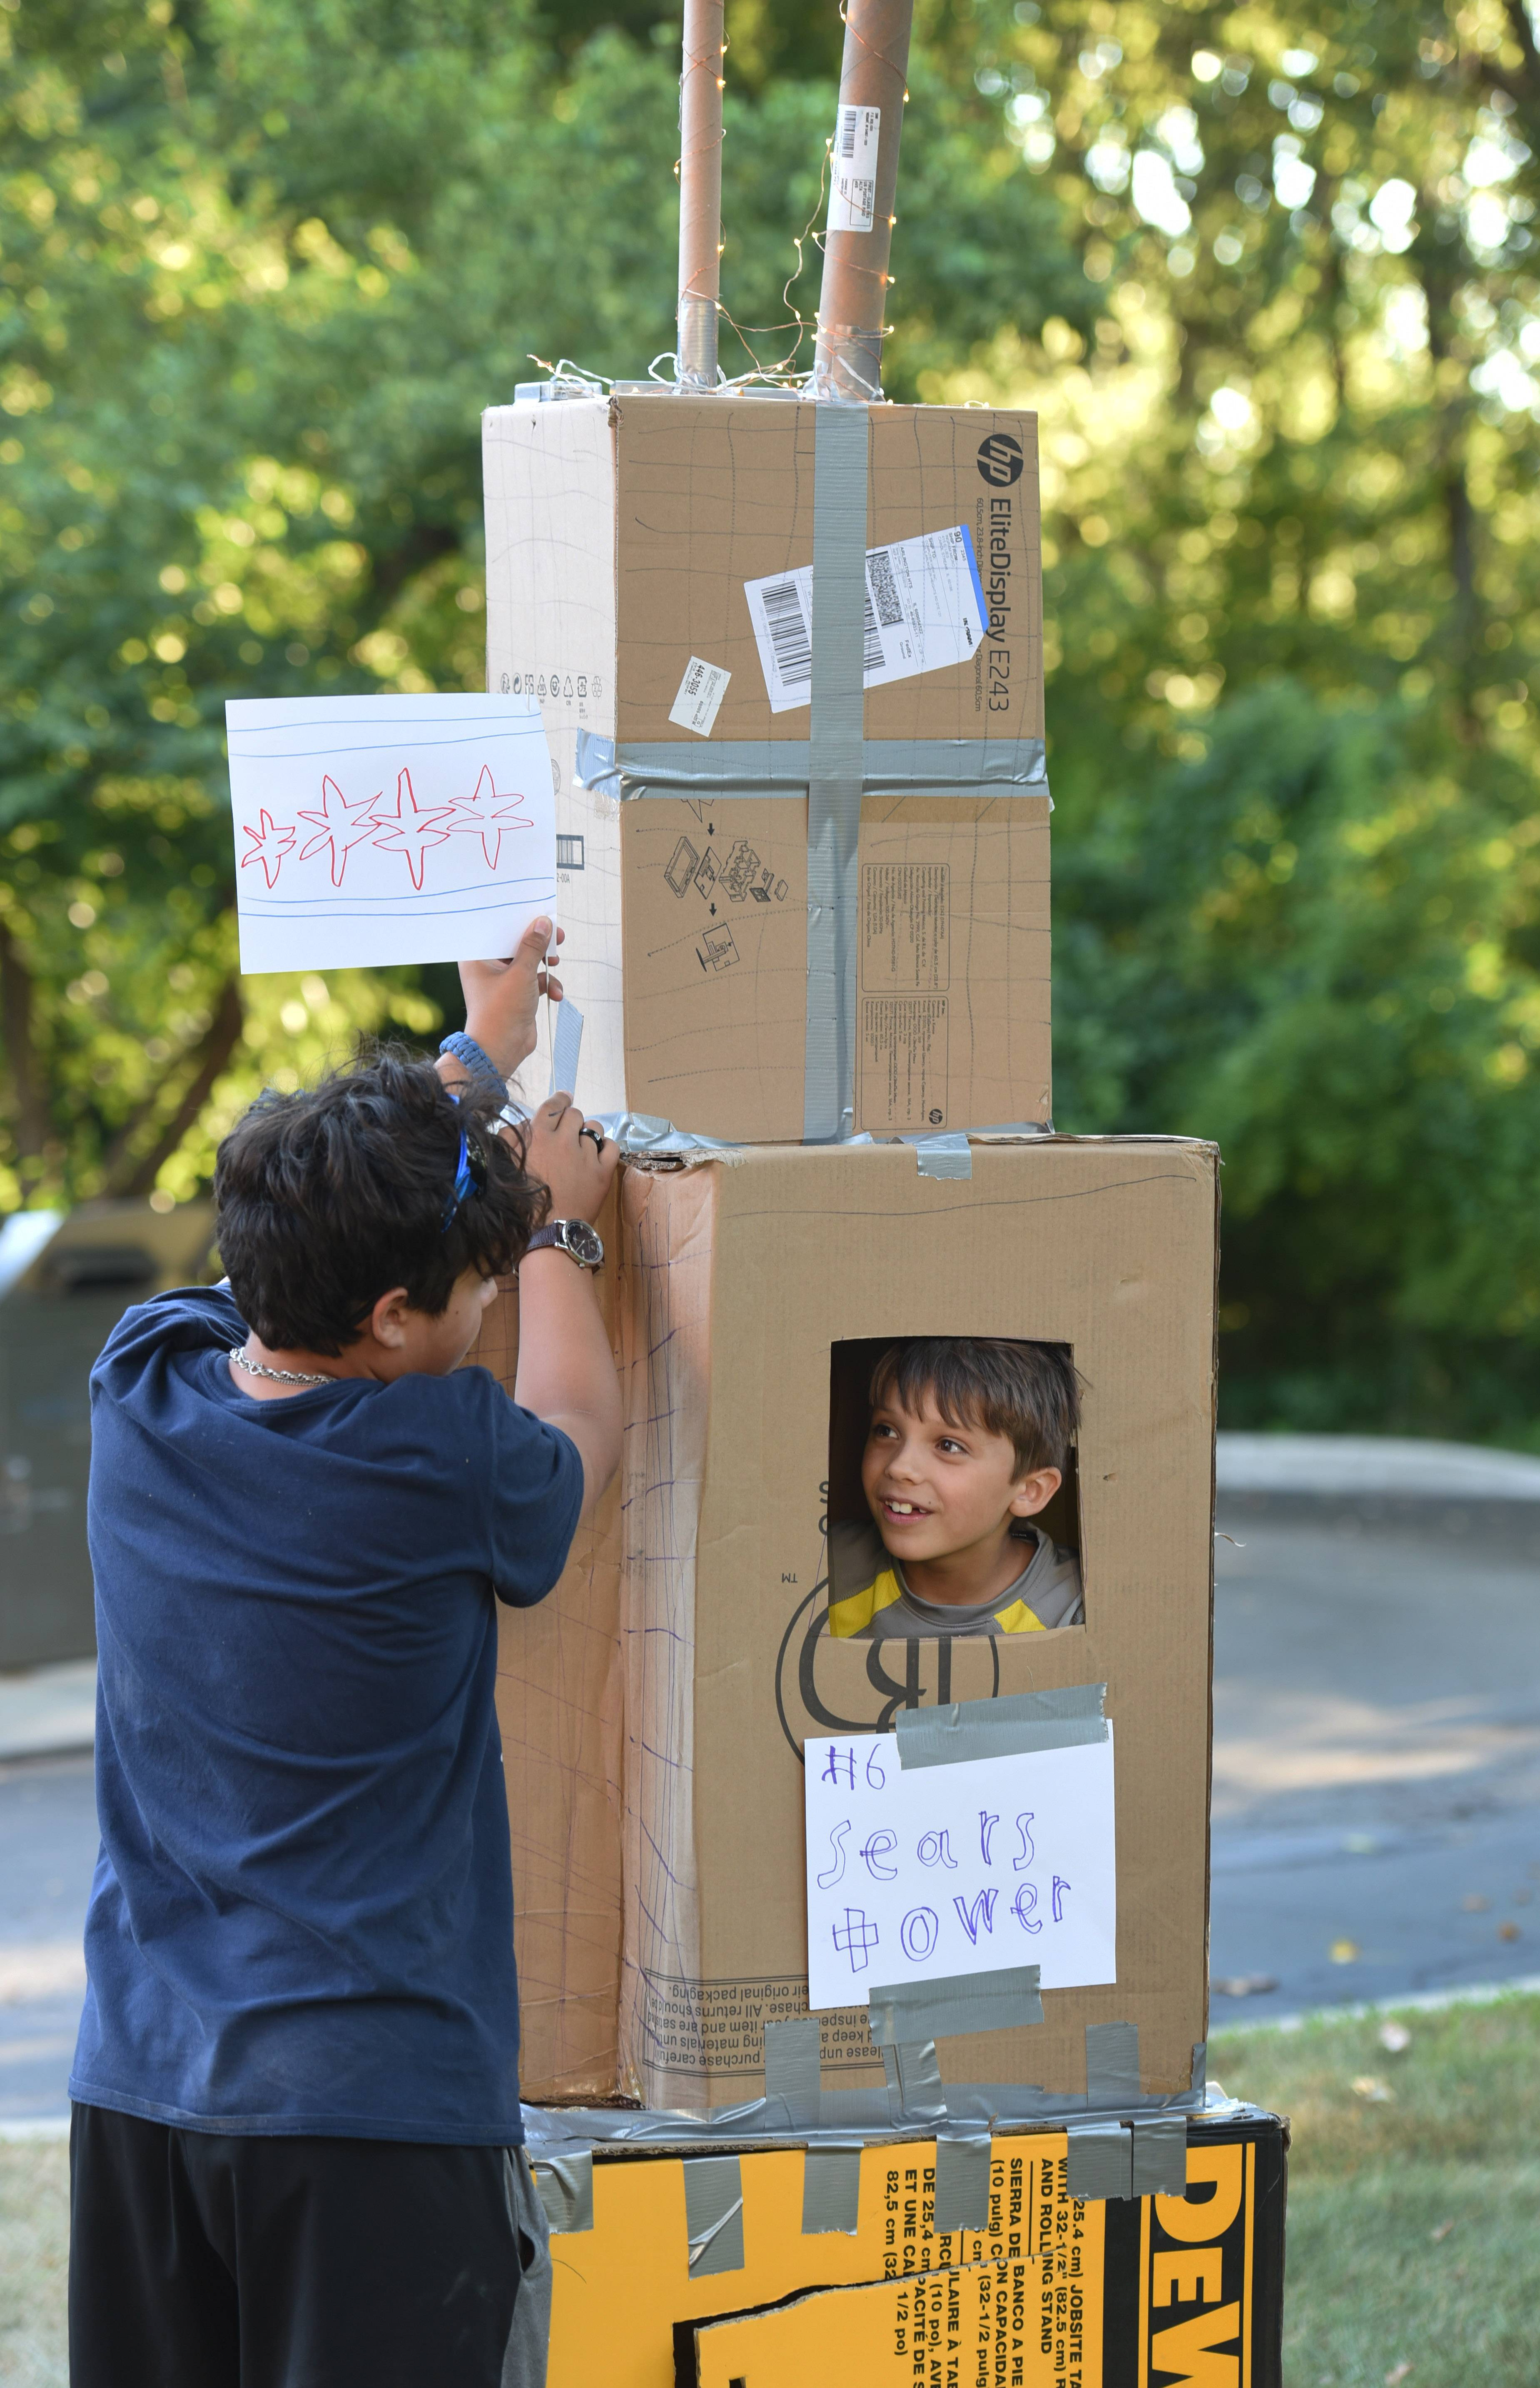 Gabriel Kruzich, left, and his brother Ethaniel Kruzich, both from Montana, are visiting family in Wauconda and participated in Monday night's Second Annual Family Fort Build at the Wauconda Area Library. The group built the Sears Tower as their official entry.